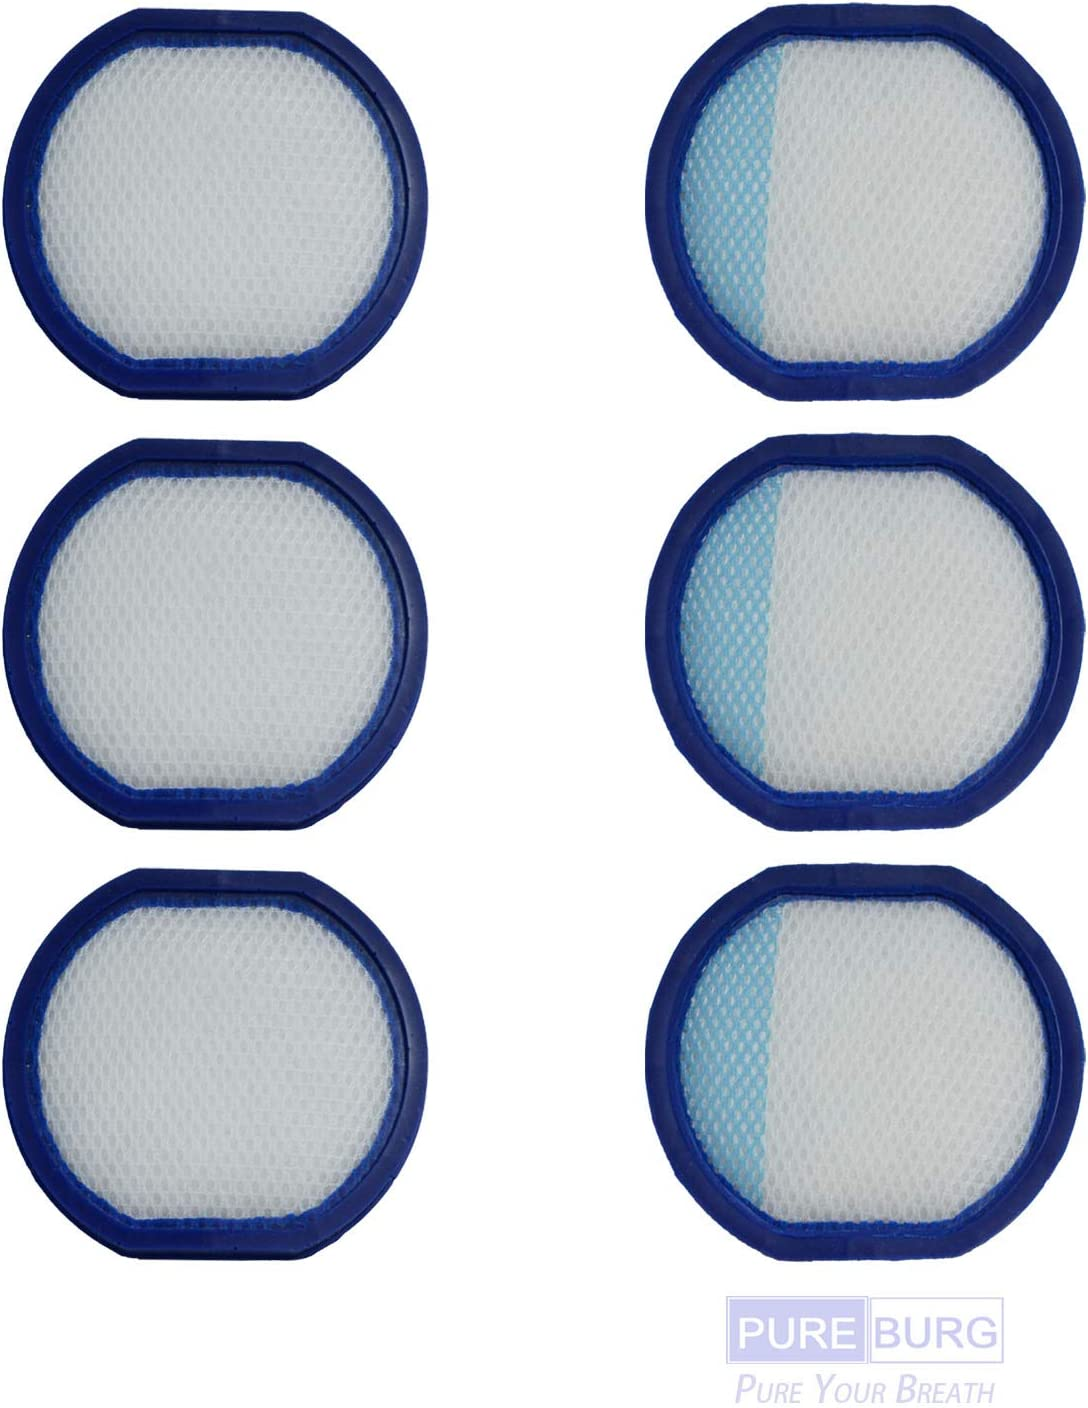 PUREBURG 6-Pack Replacement Vacuum Filter Compatible with Hoover React Whole Home & Fusion Max Cordless fits BH53200 BH53210 BH53220 BH53230pc BH53100 BH53110 BH53120 Part Number 440011434